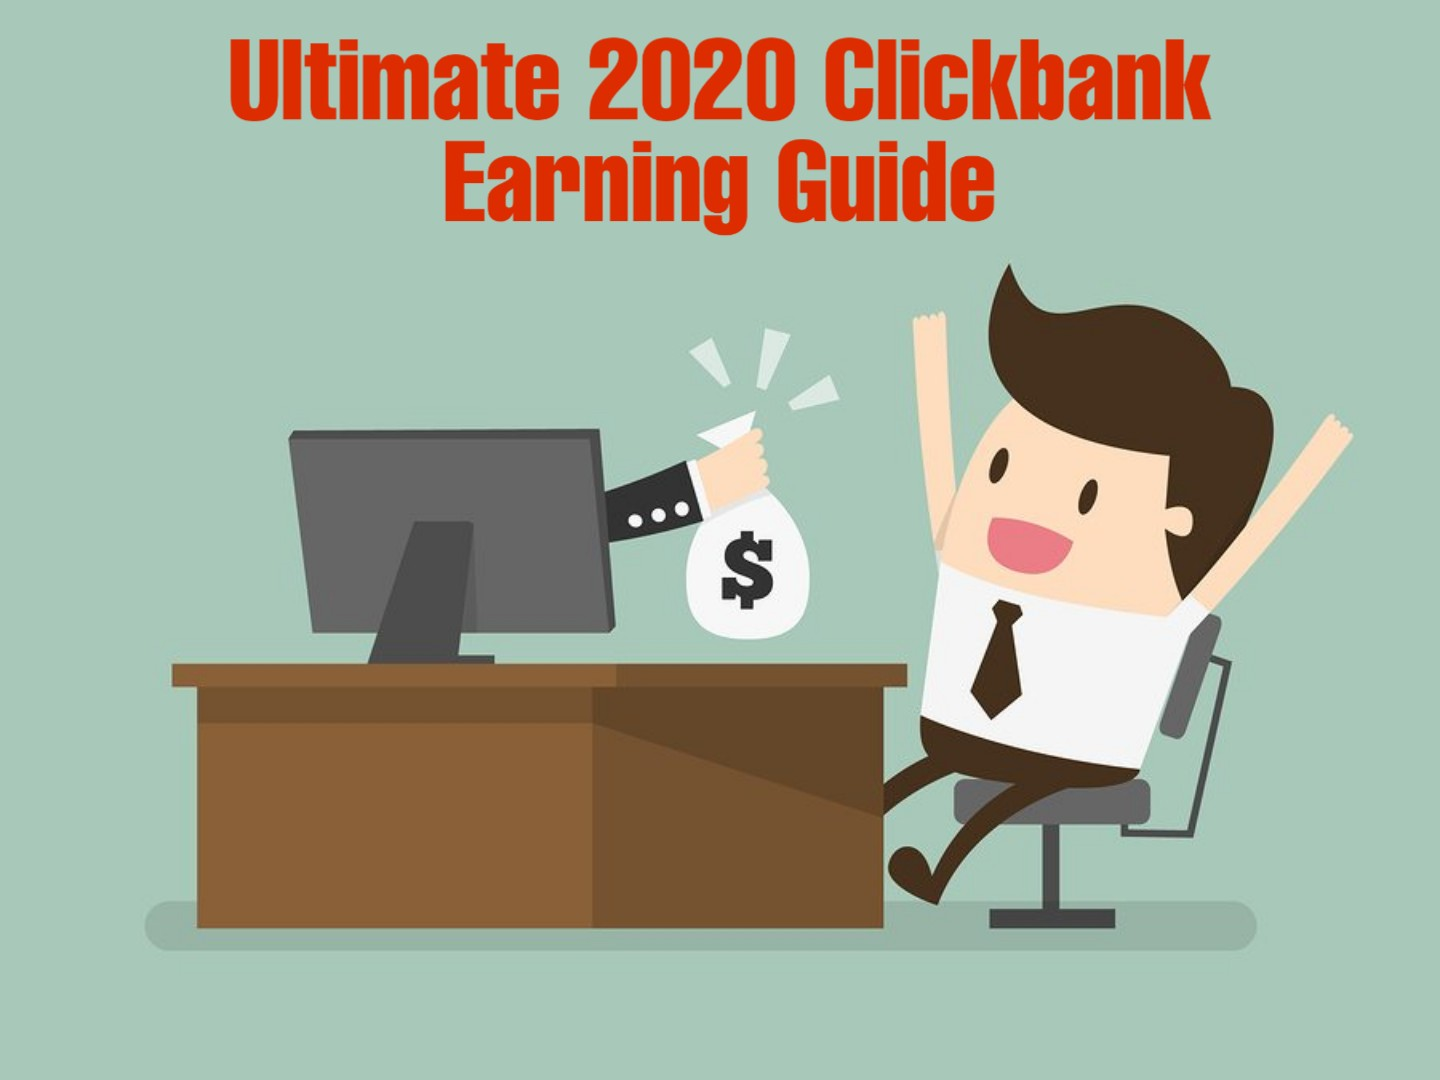 Use this 2020 Clickbank Earning Method & Make 1000+ Every Single Week